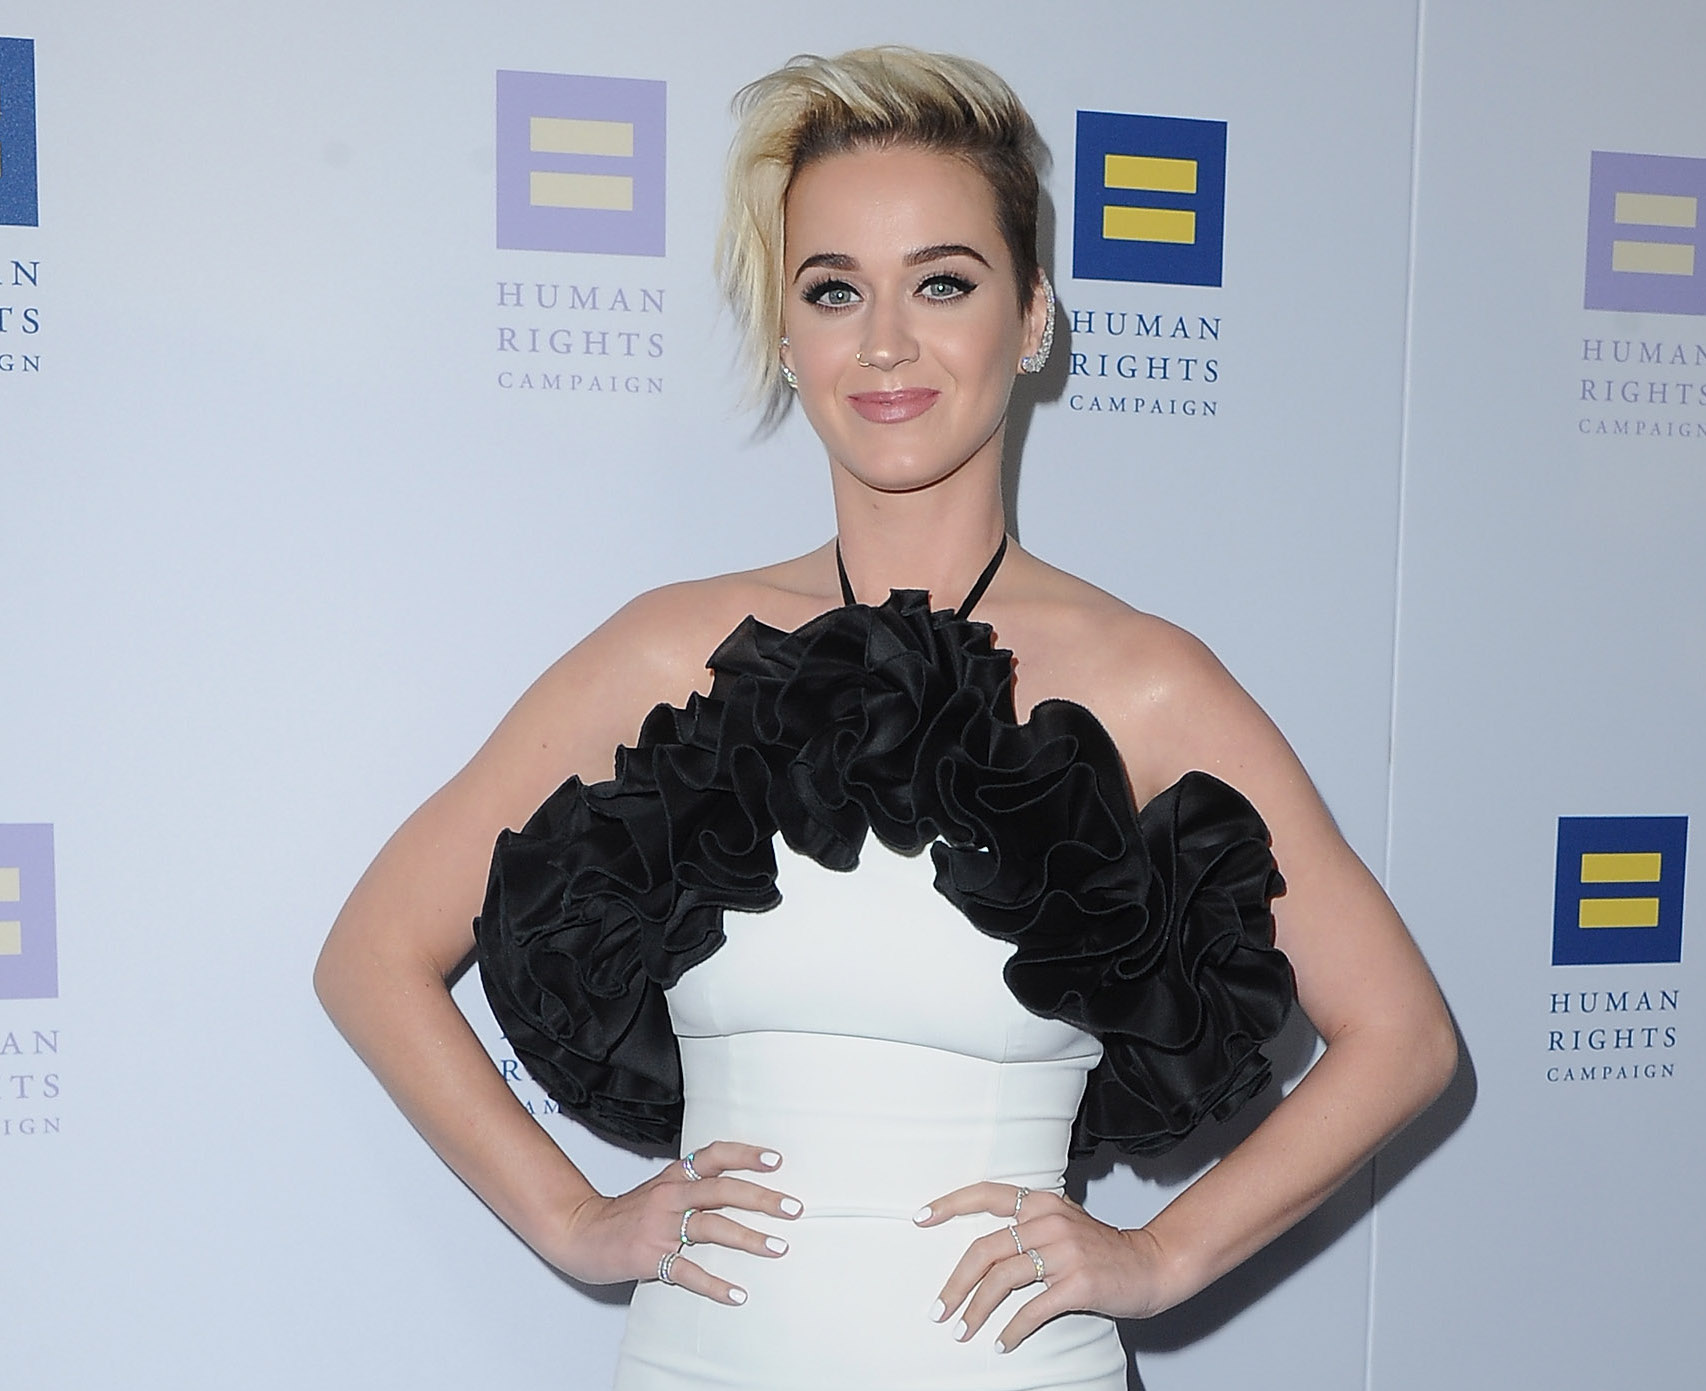 Katy Perry wore a sports bra to an event and we fully support this look